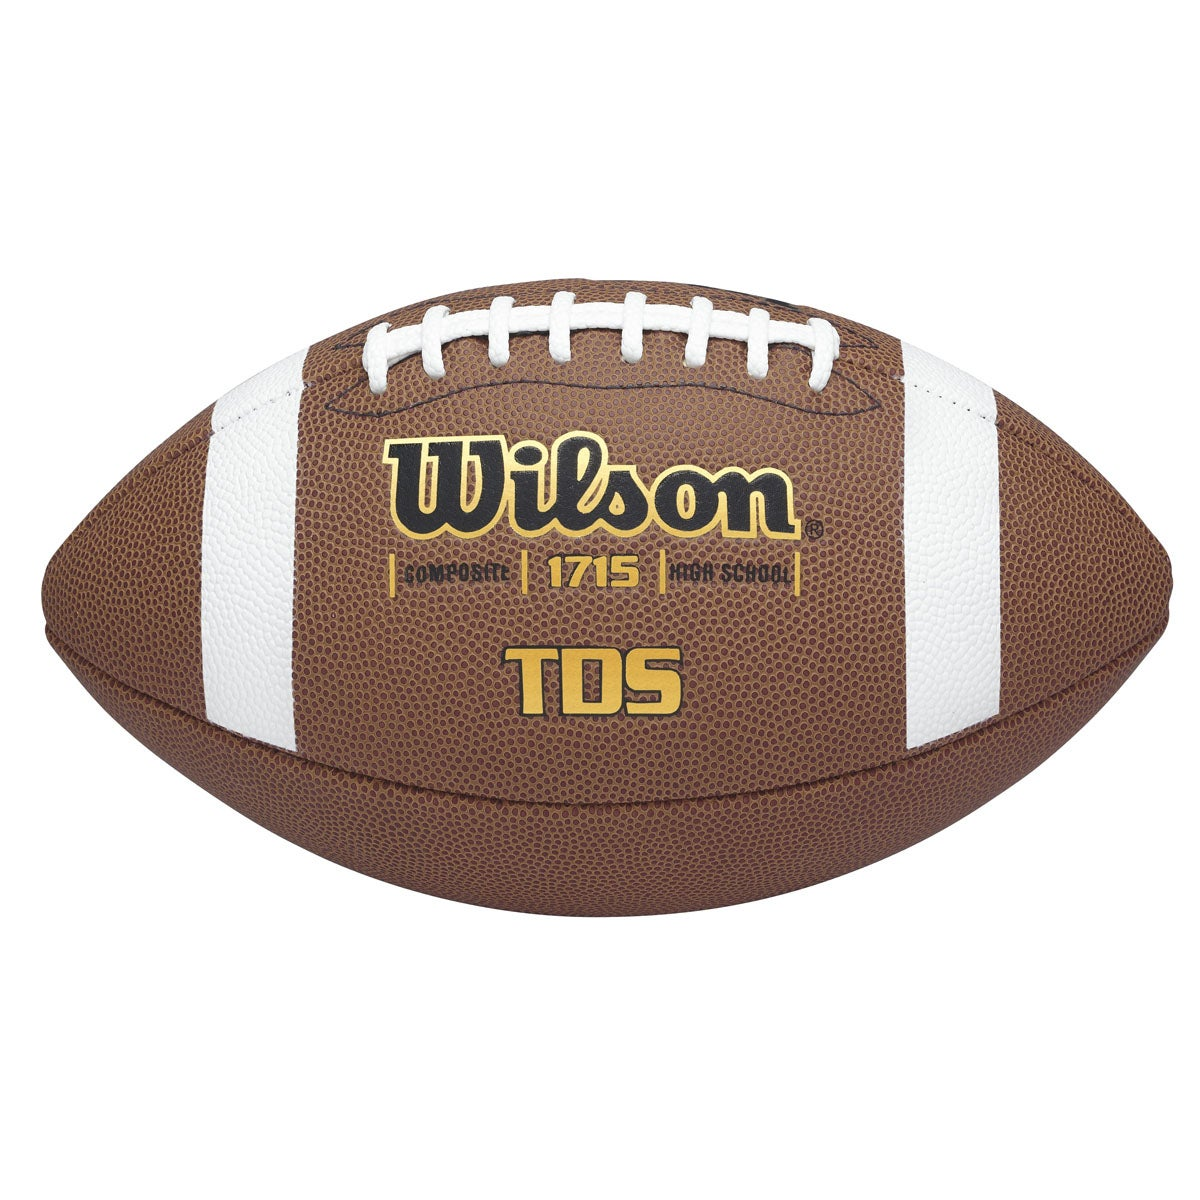 TDS Composite Football - Official Size